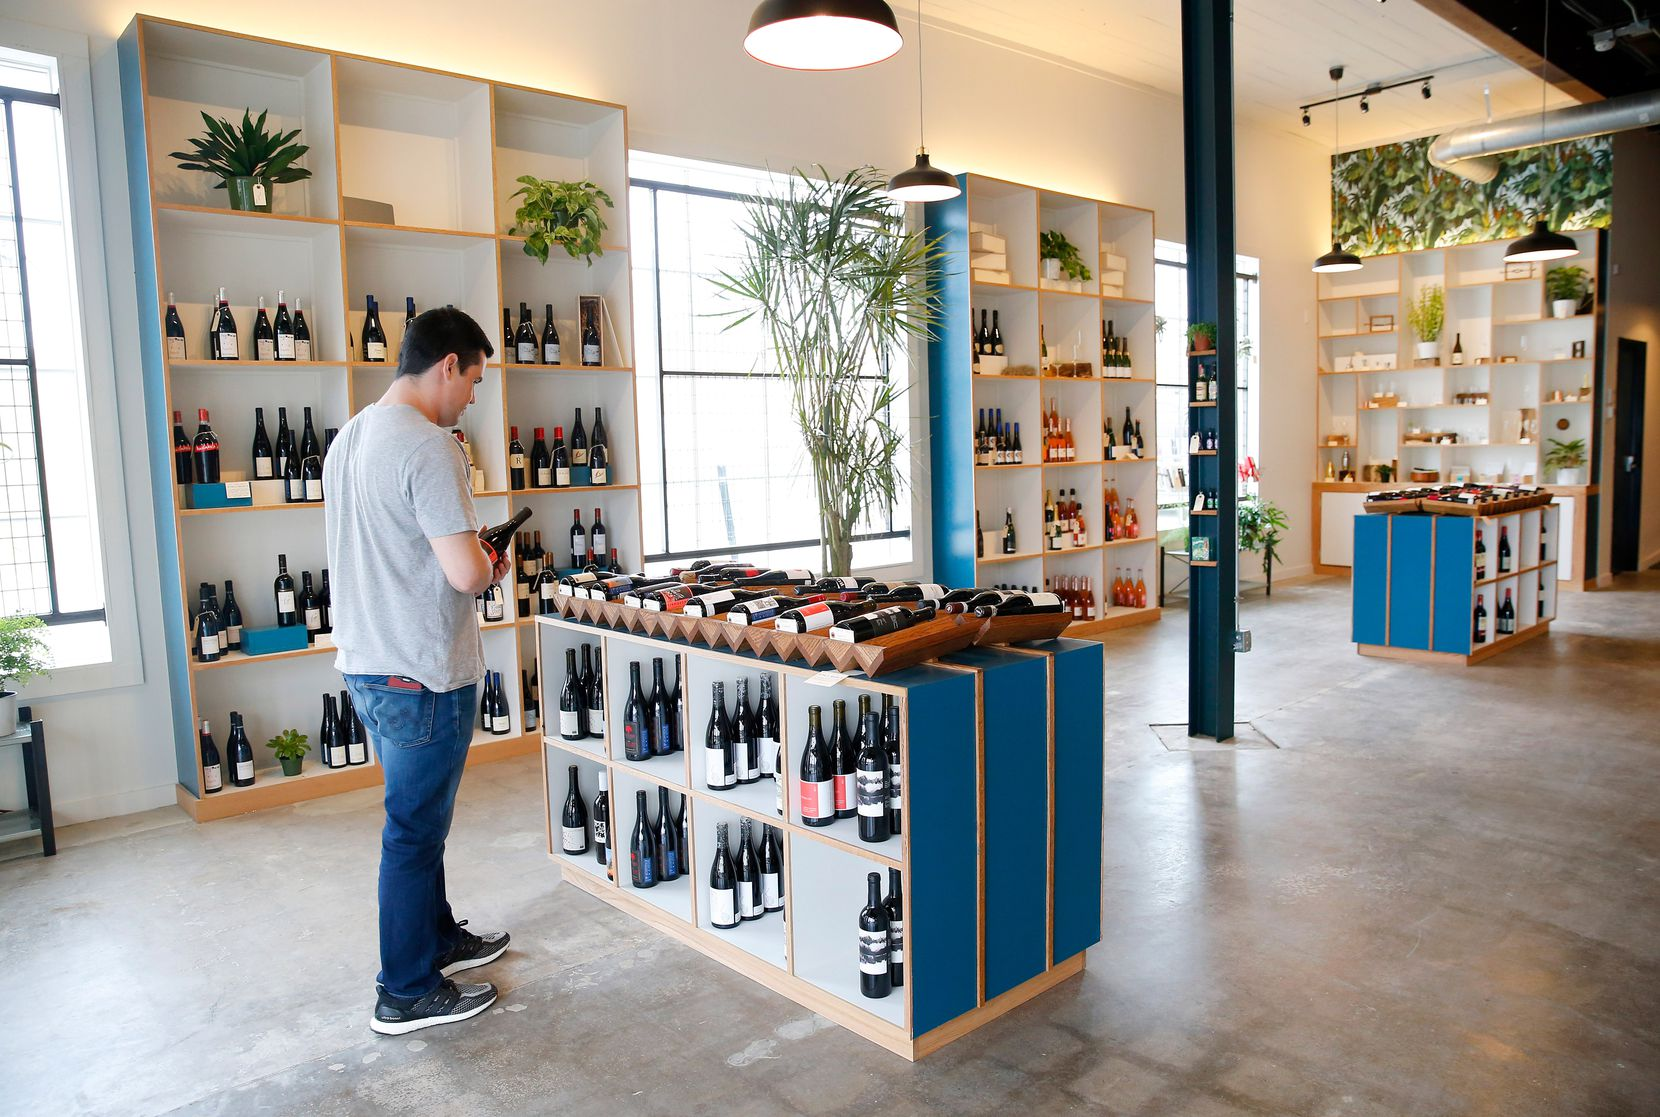 Bar and Garden, a new shop on Ross Avenue, specializes in natural wines.